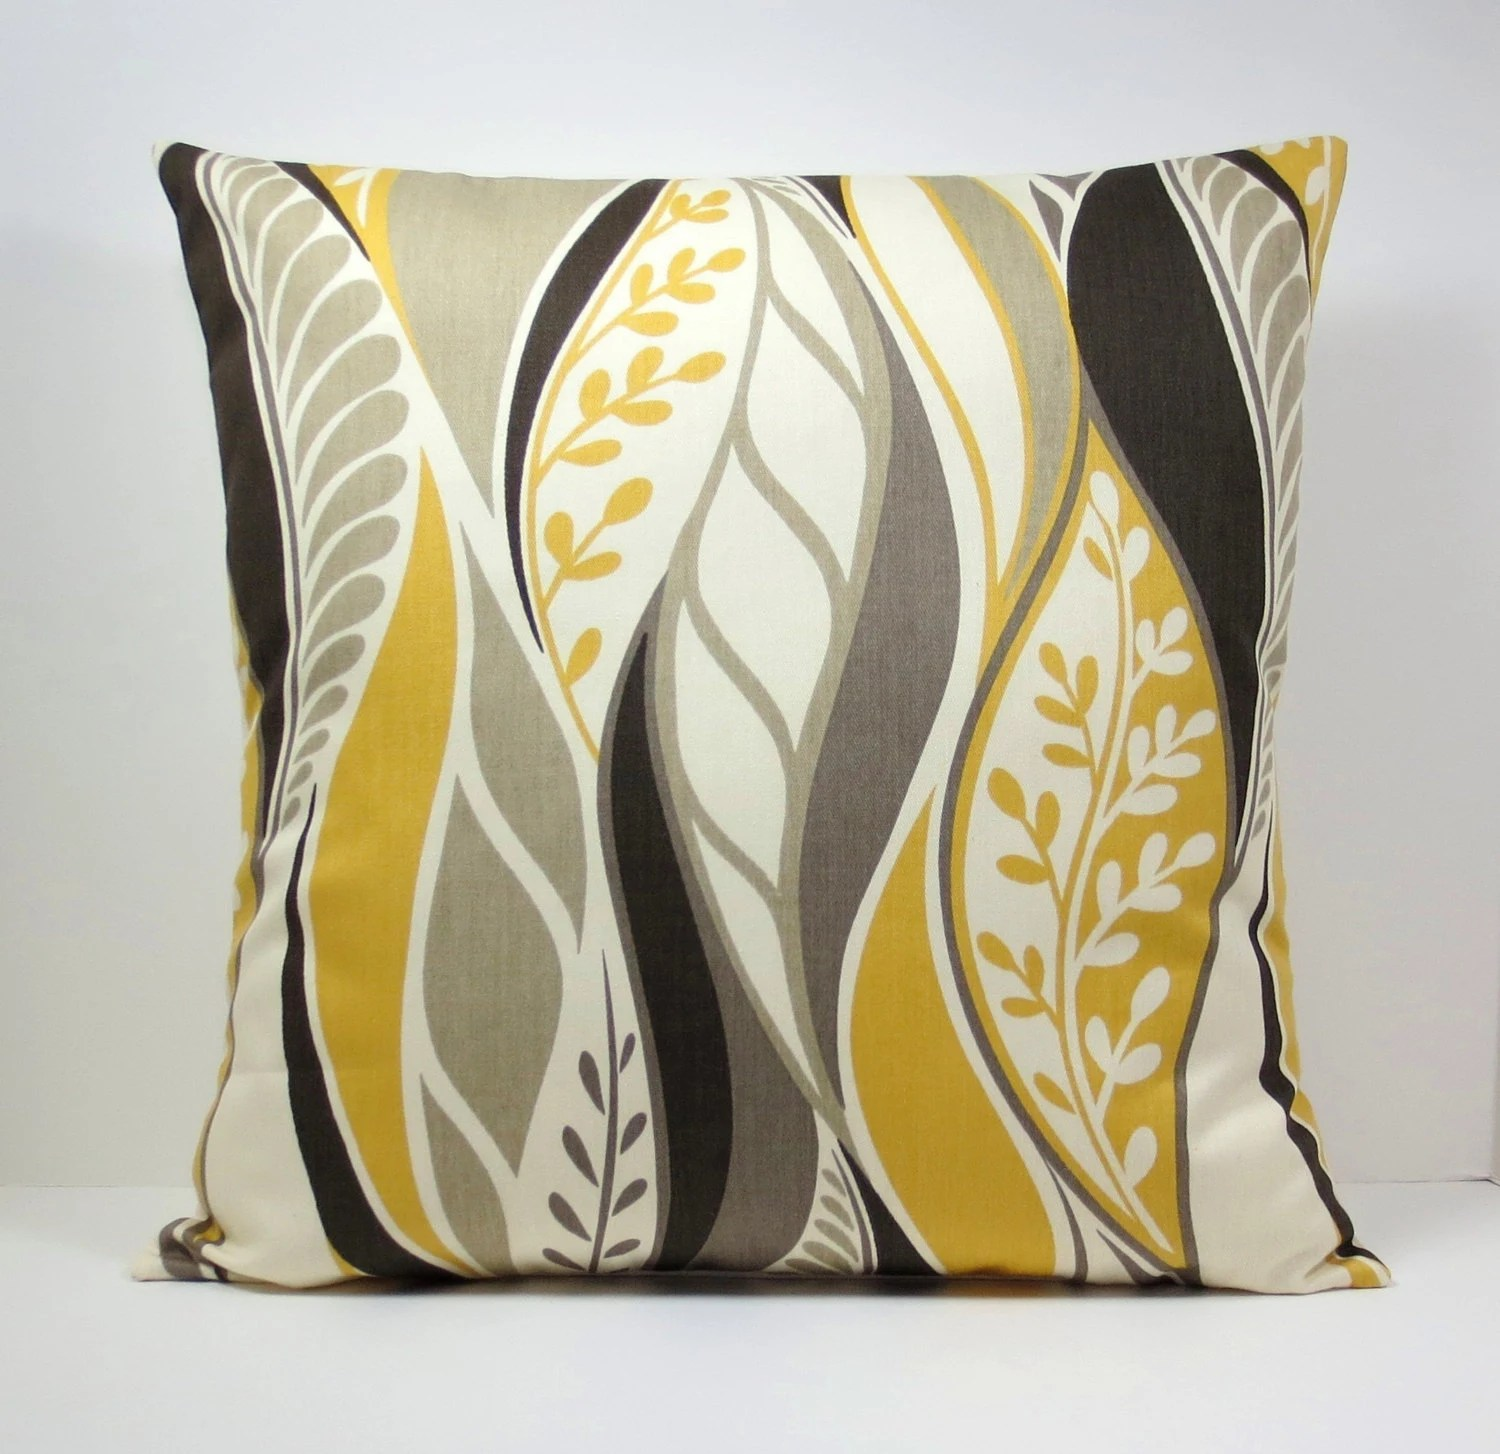 Mustard Yellow Gold Abstract Leaves decorative throw by